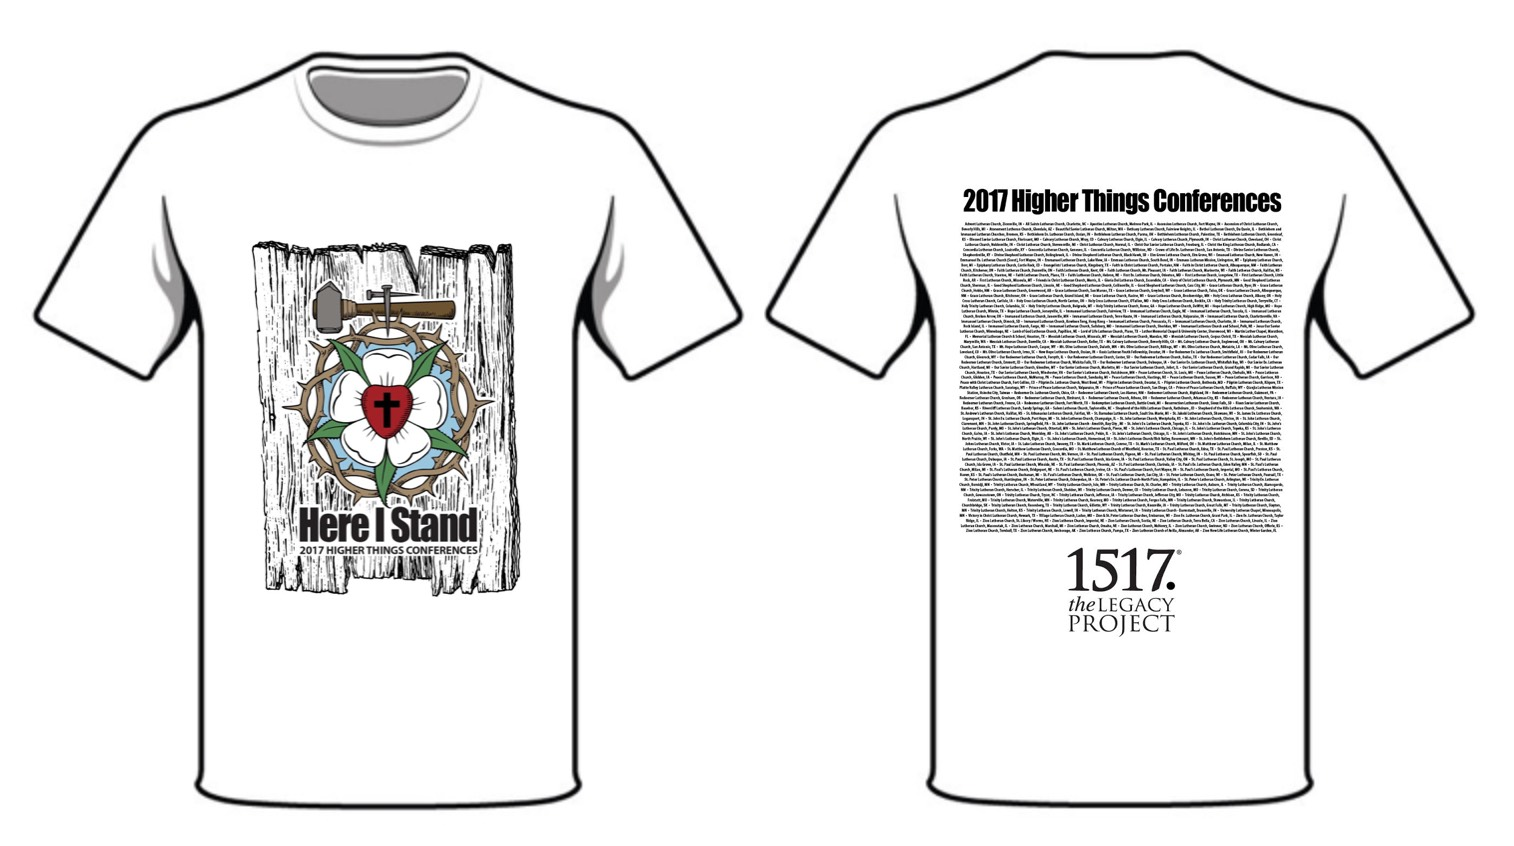 2017 Conference T-Shirts